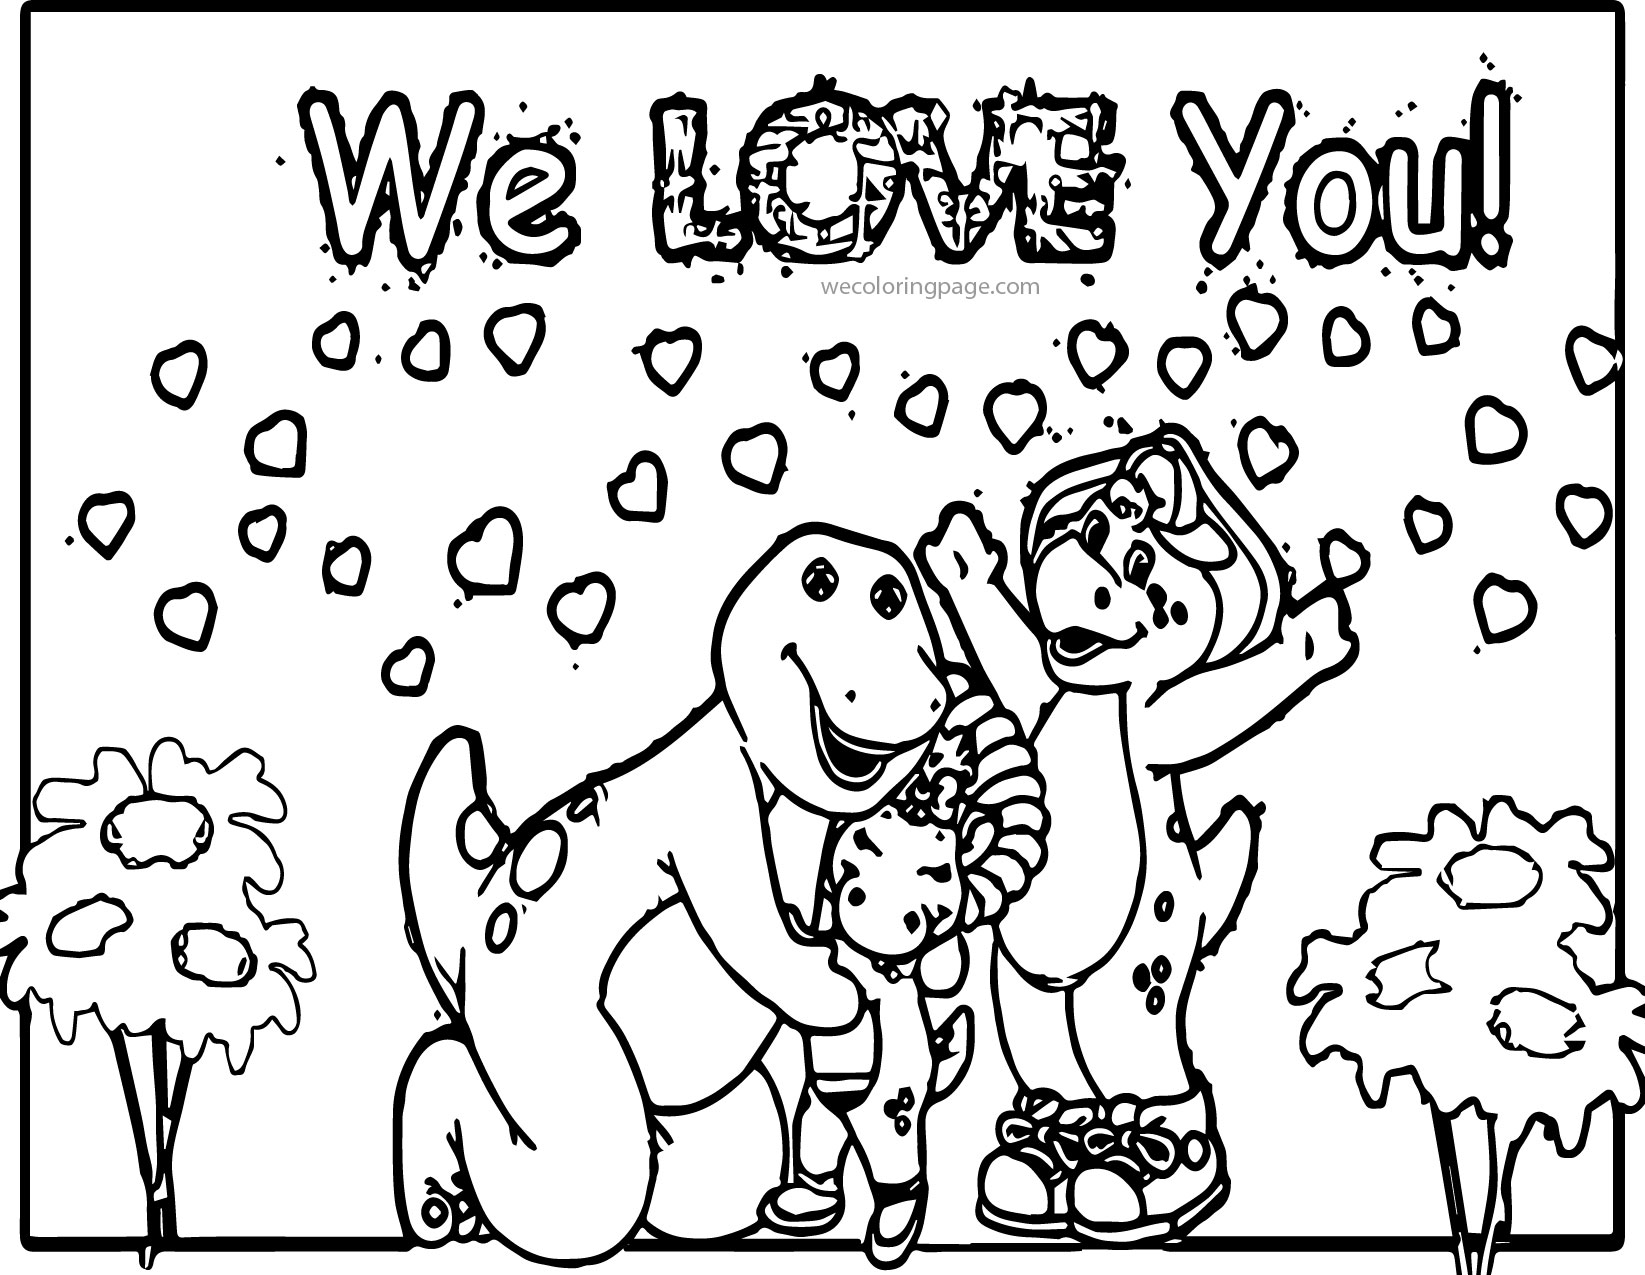 Barney Friends Coloring Pages Wecoloringpage